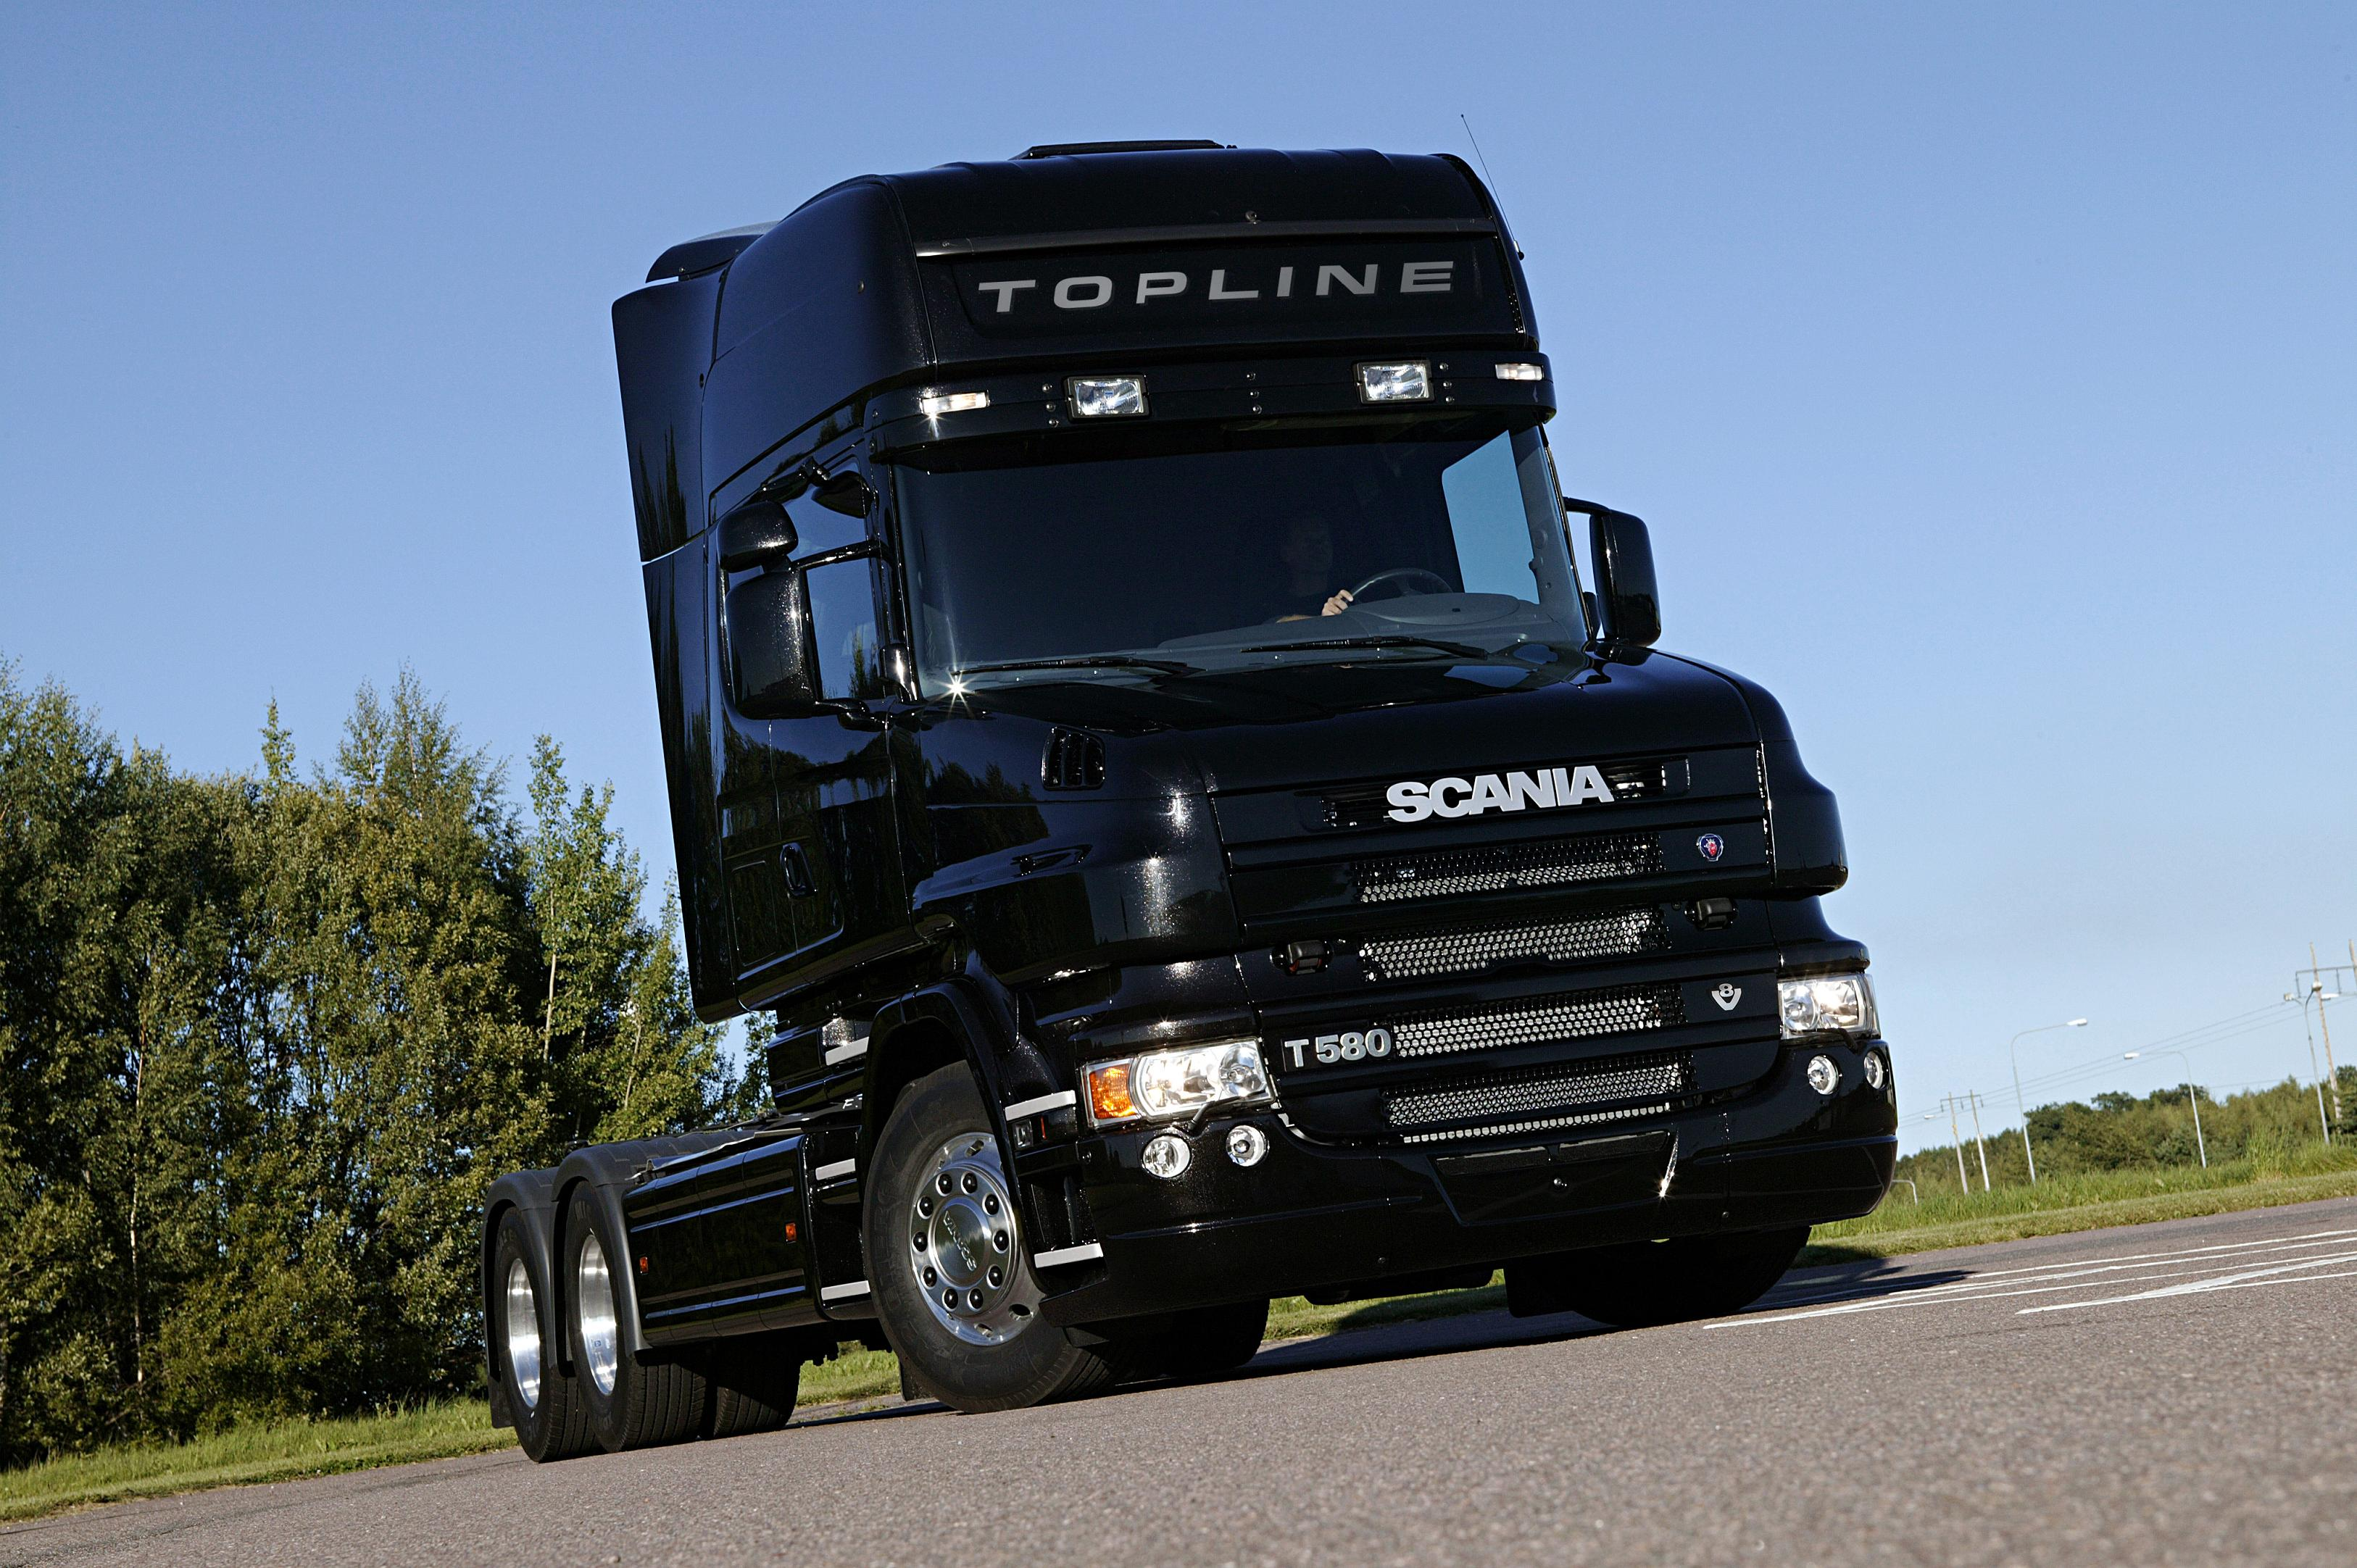 Scania T580 Topline Photos Photogallery With 1 Pics